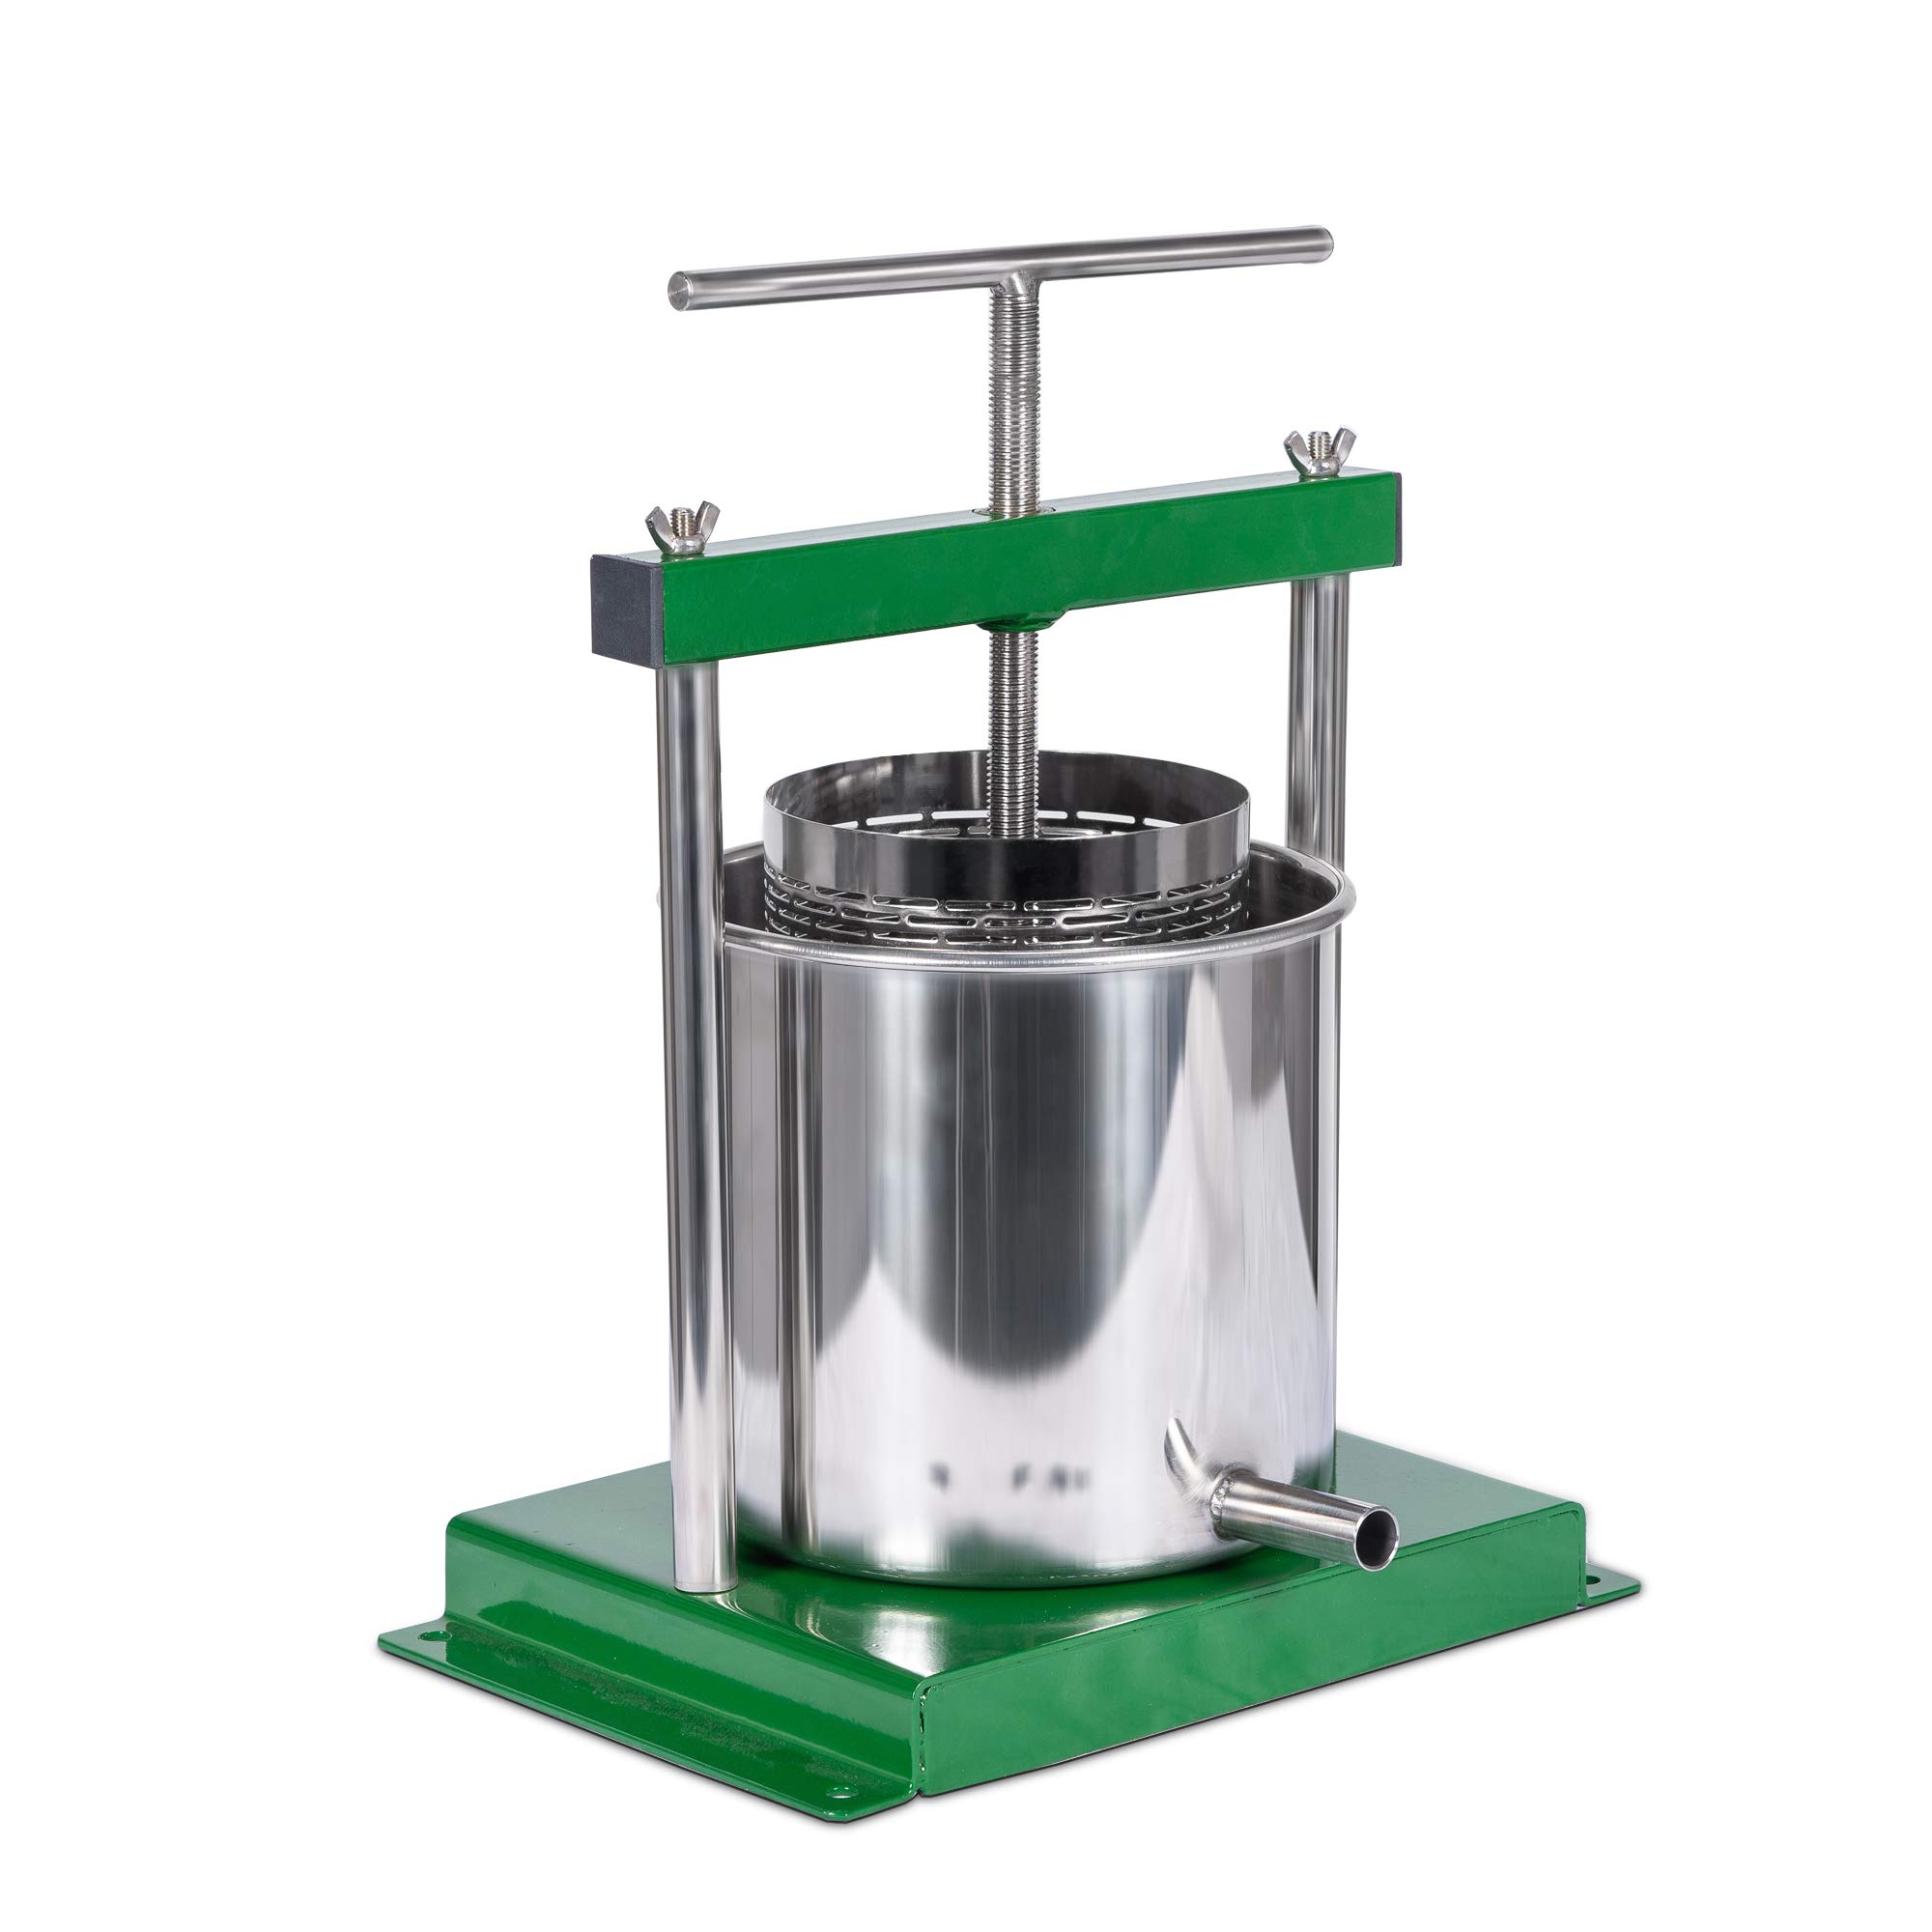 4.3 Liter (1.25 Gallon) Cider, Wine, Grape, Apple Press, For Apple Cider, Wine and Cider Making, Chose Size by Montimax